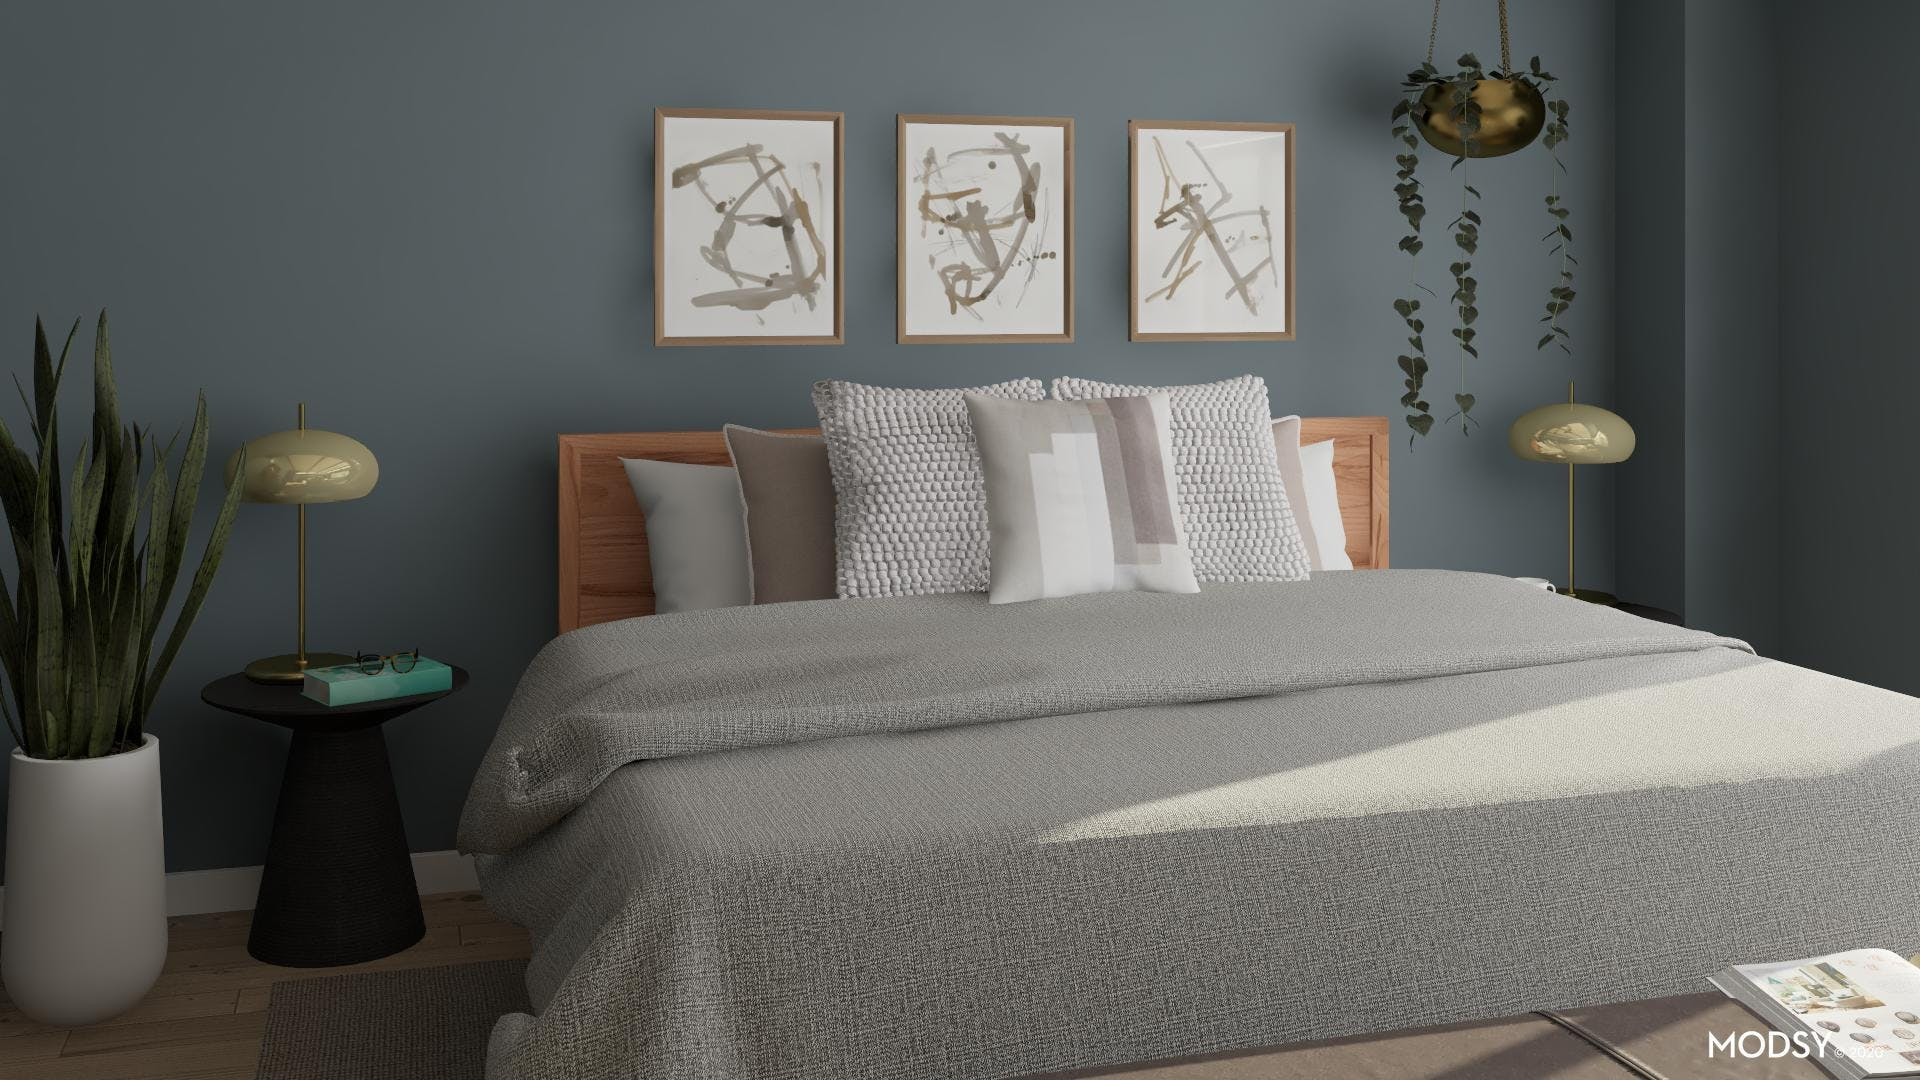 Textured Neutrals In A Contemporary Bedroom